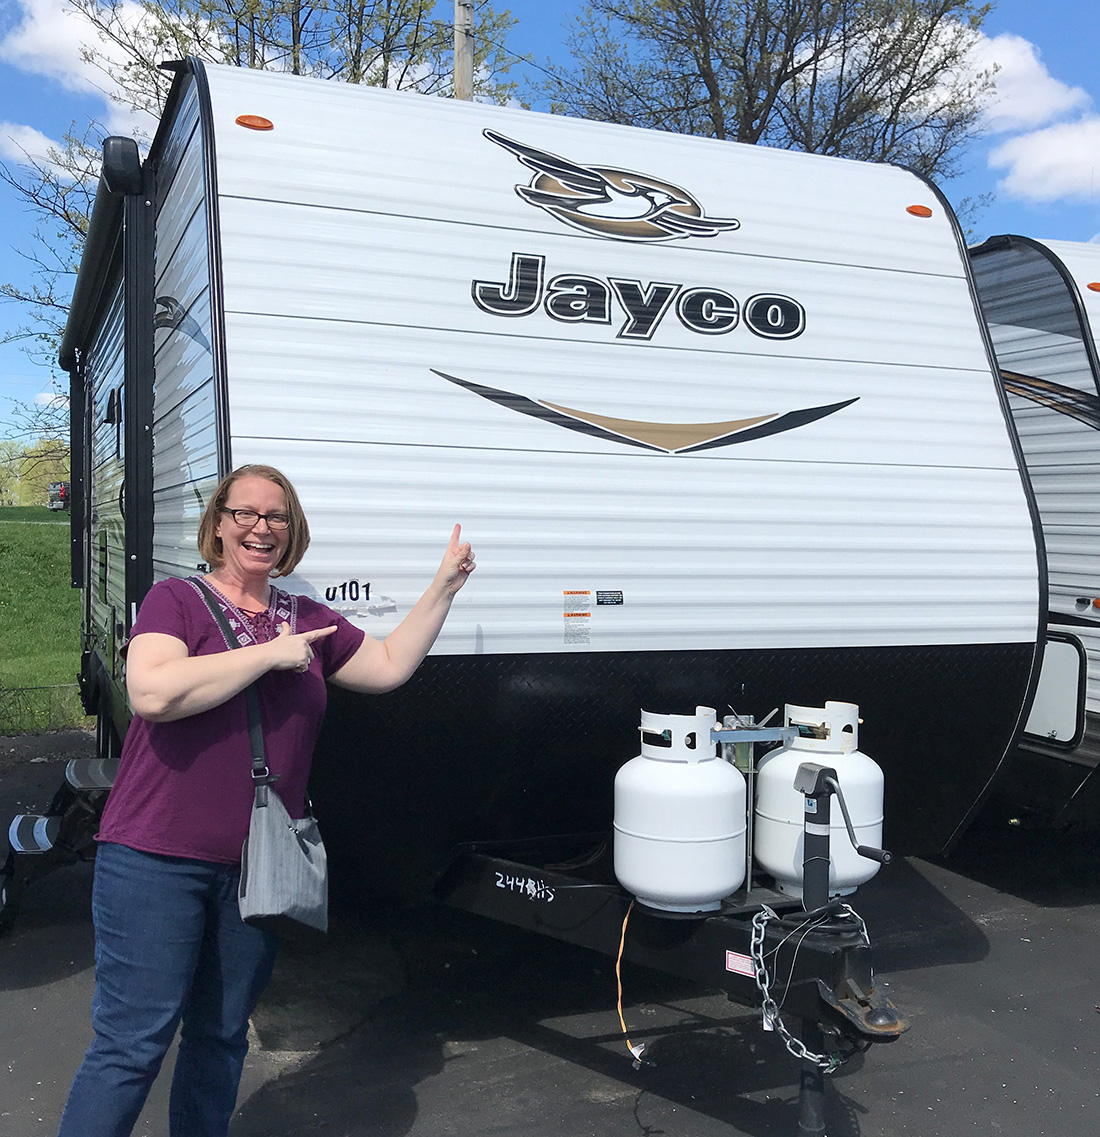 The author in front of the family's new RV.